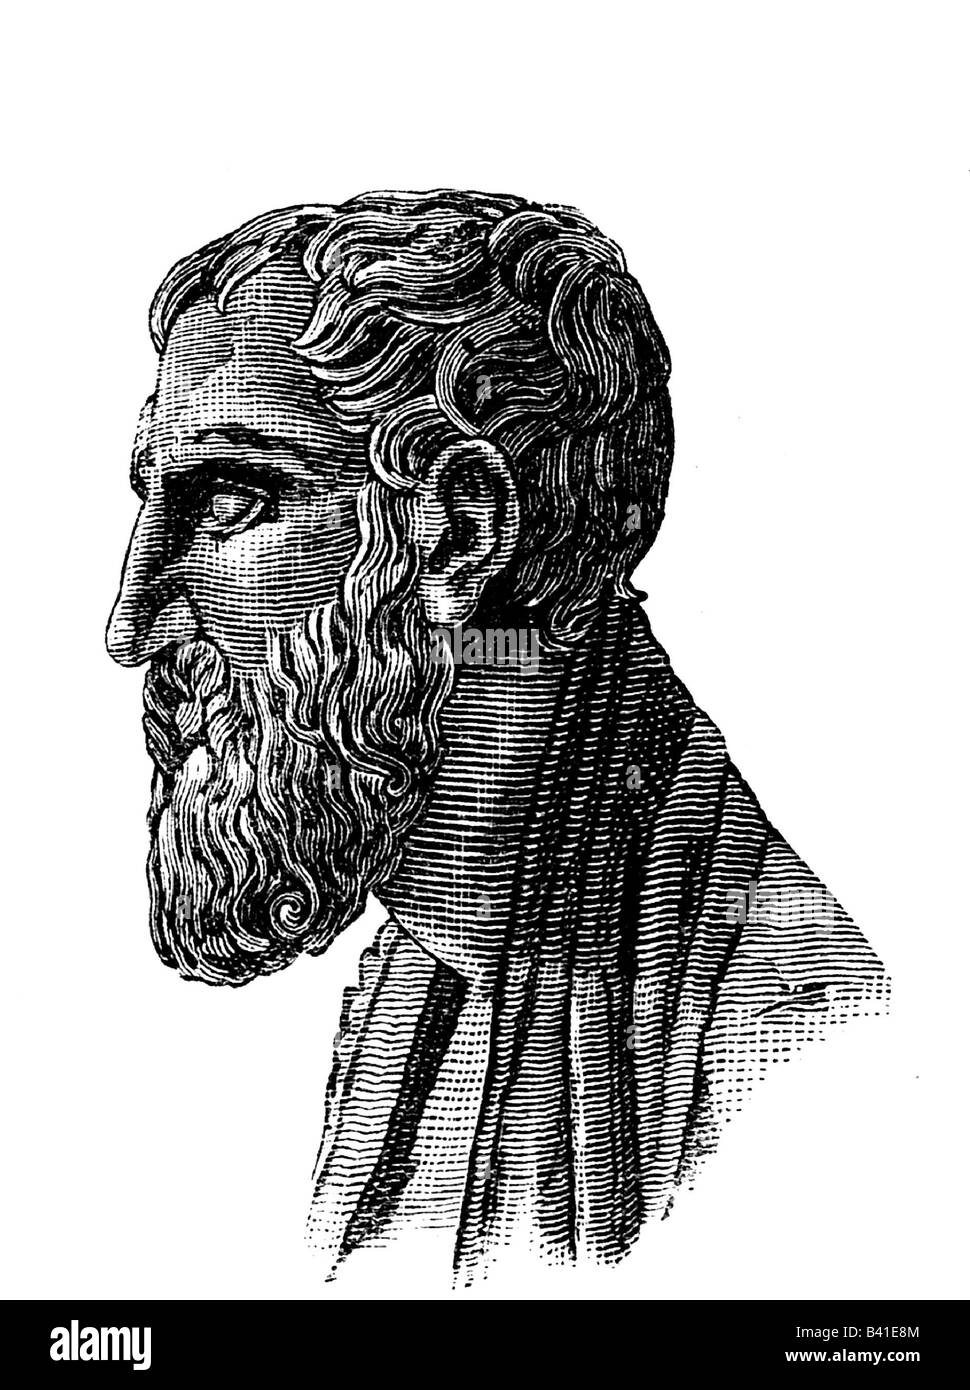 Zeno of Citium, circa 335 - 263 BC, Greek philosopher, portrait, side-face, engraving after ancient bust, 19th century, - Stock Image